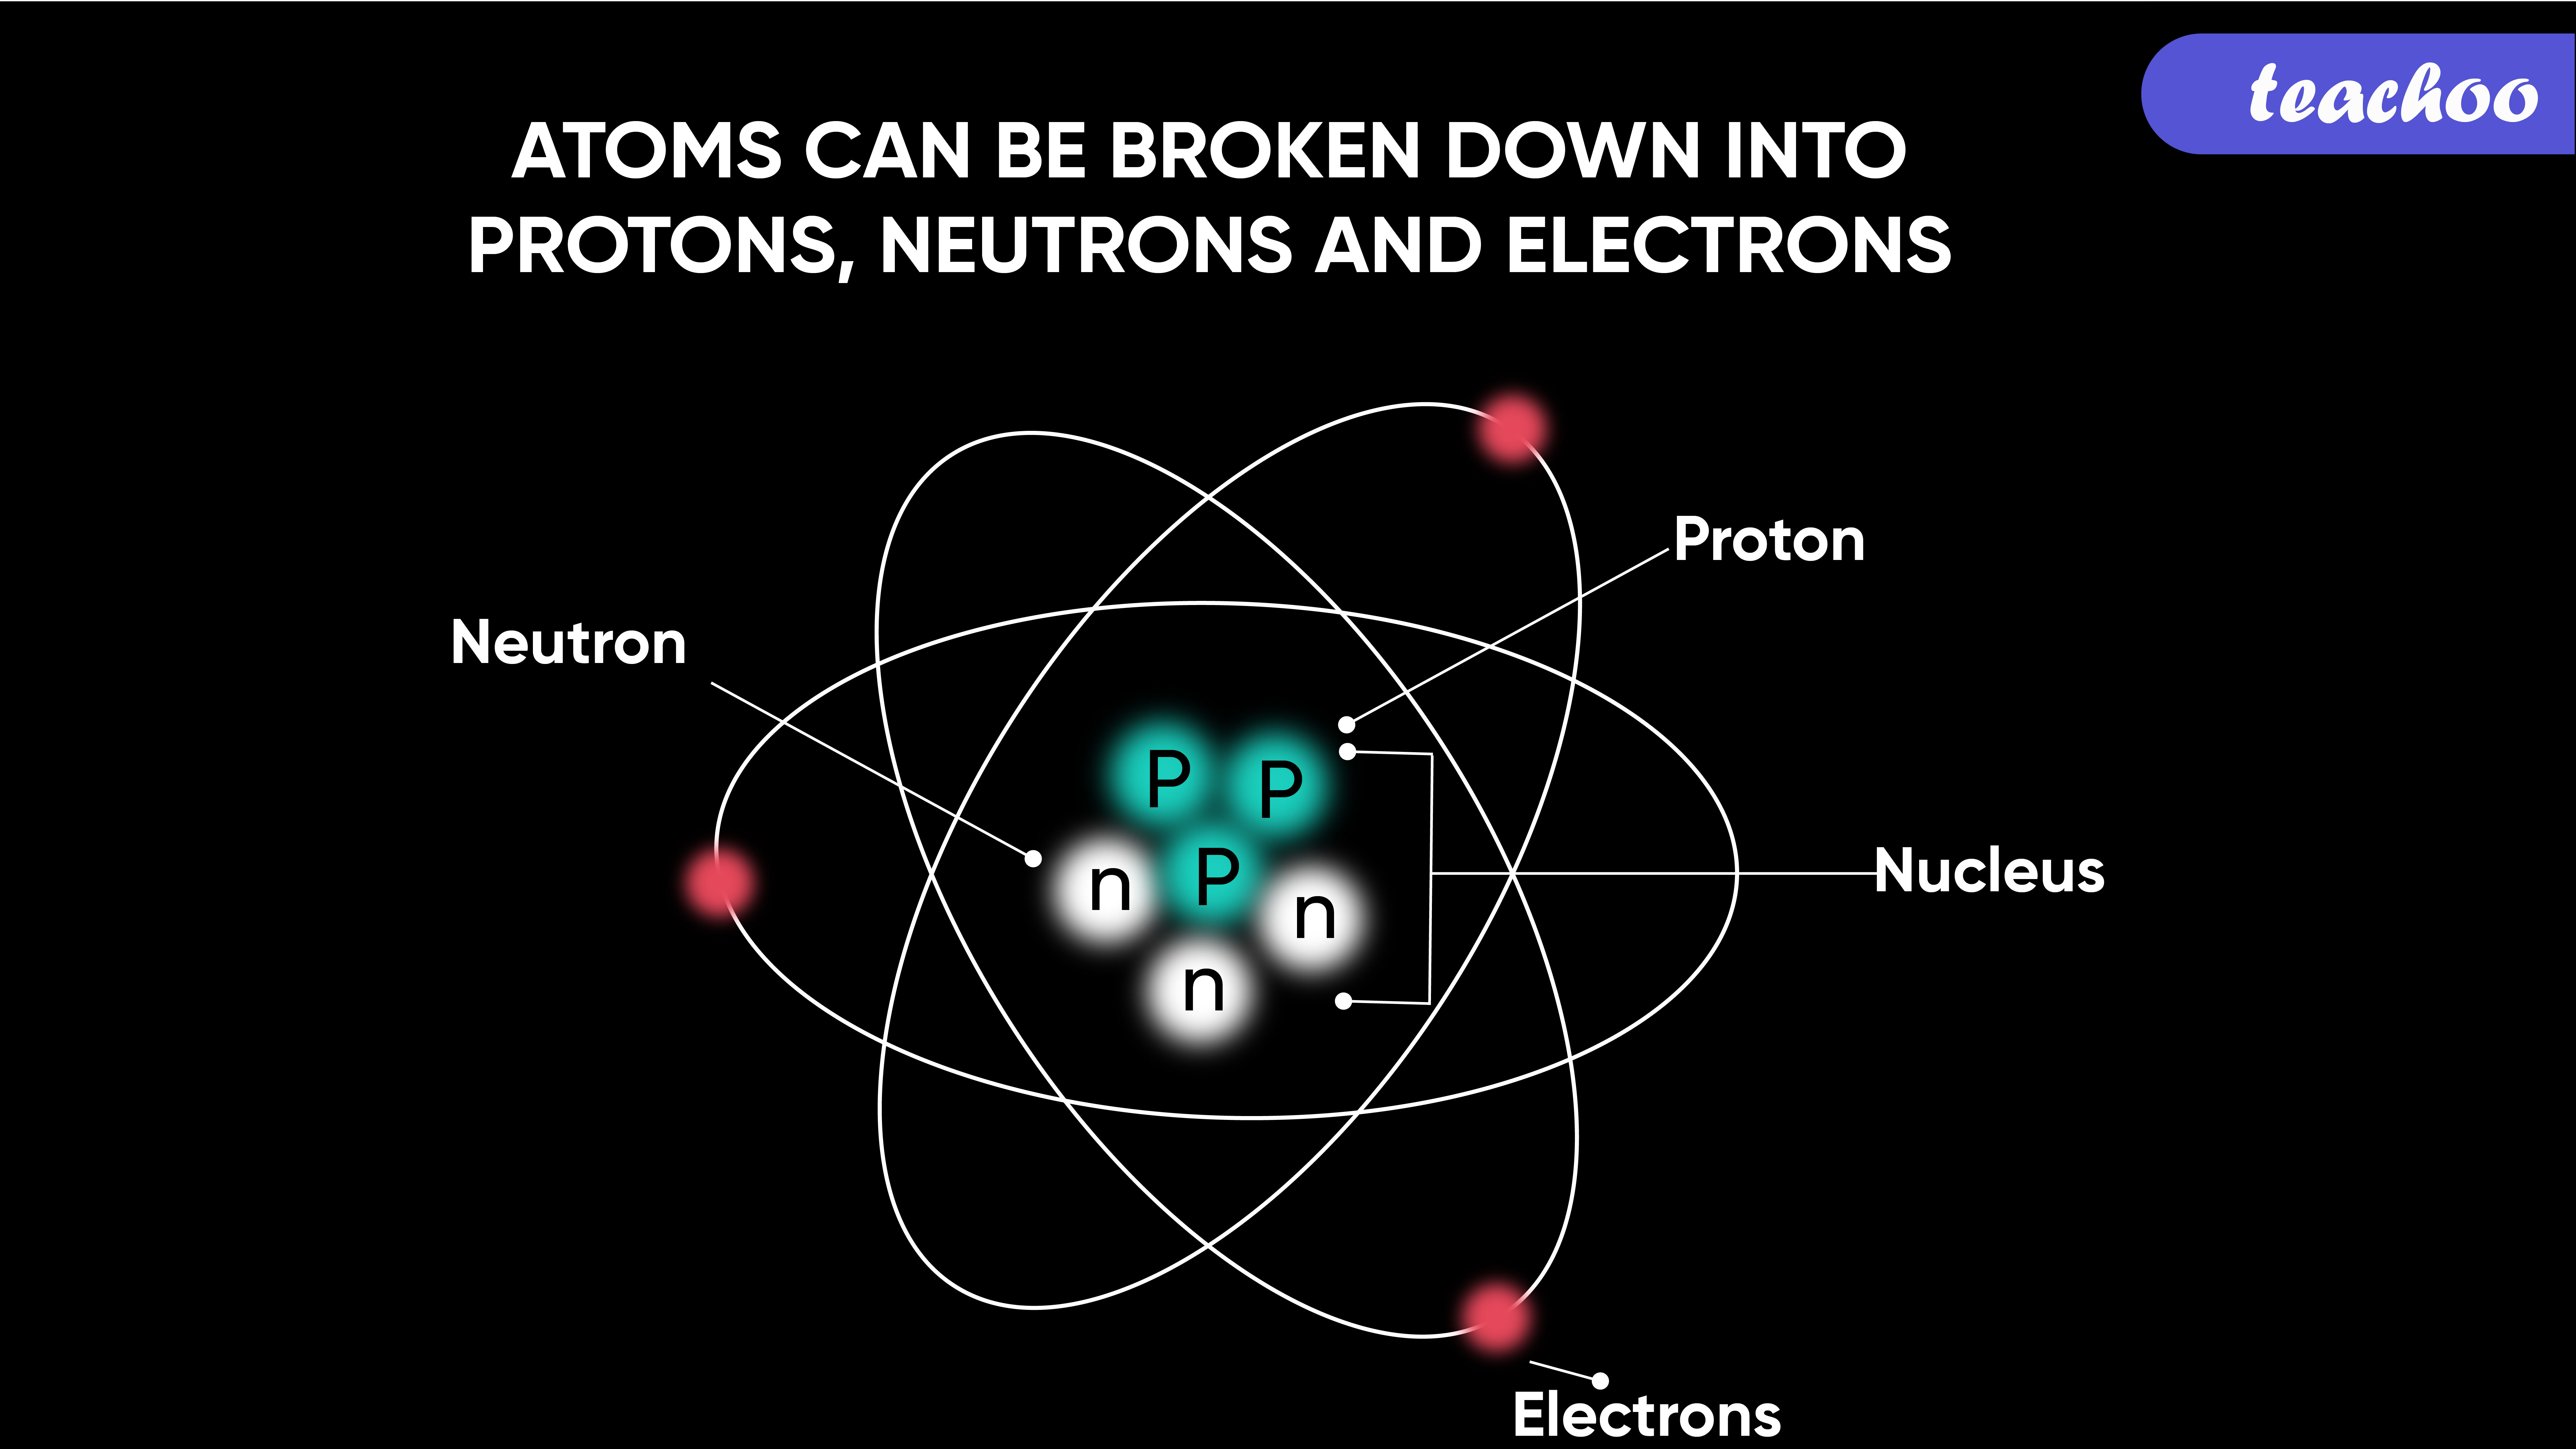 Atoms can be broken down into Protons, Neutrons and Electrons - Teachoo-01.jpg